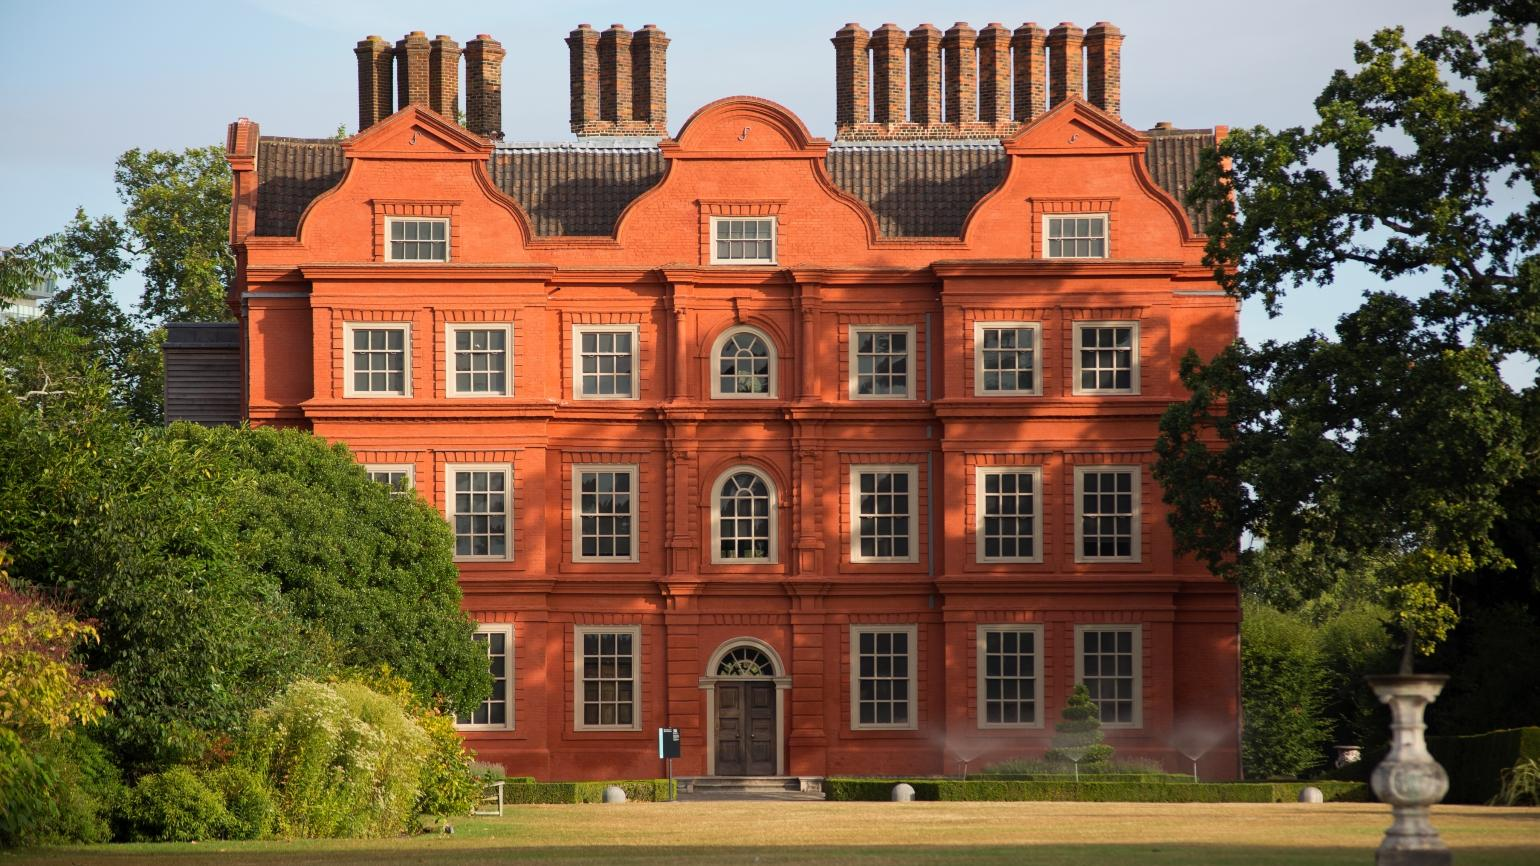 Kew Palace, Historic Royal Palaces